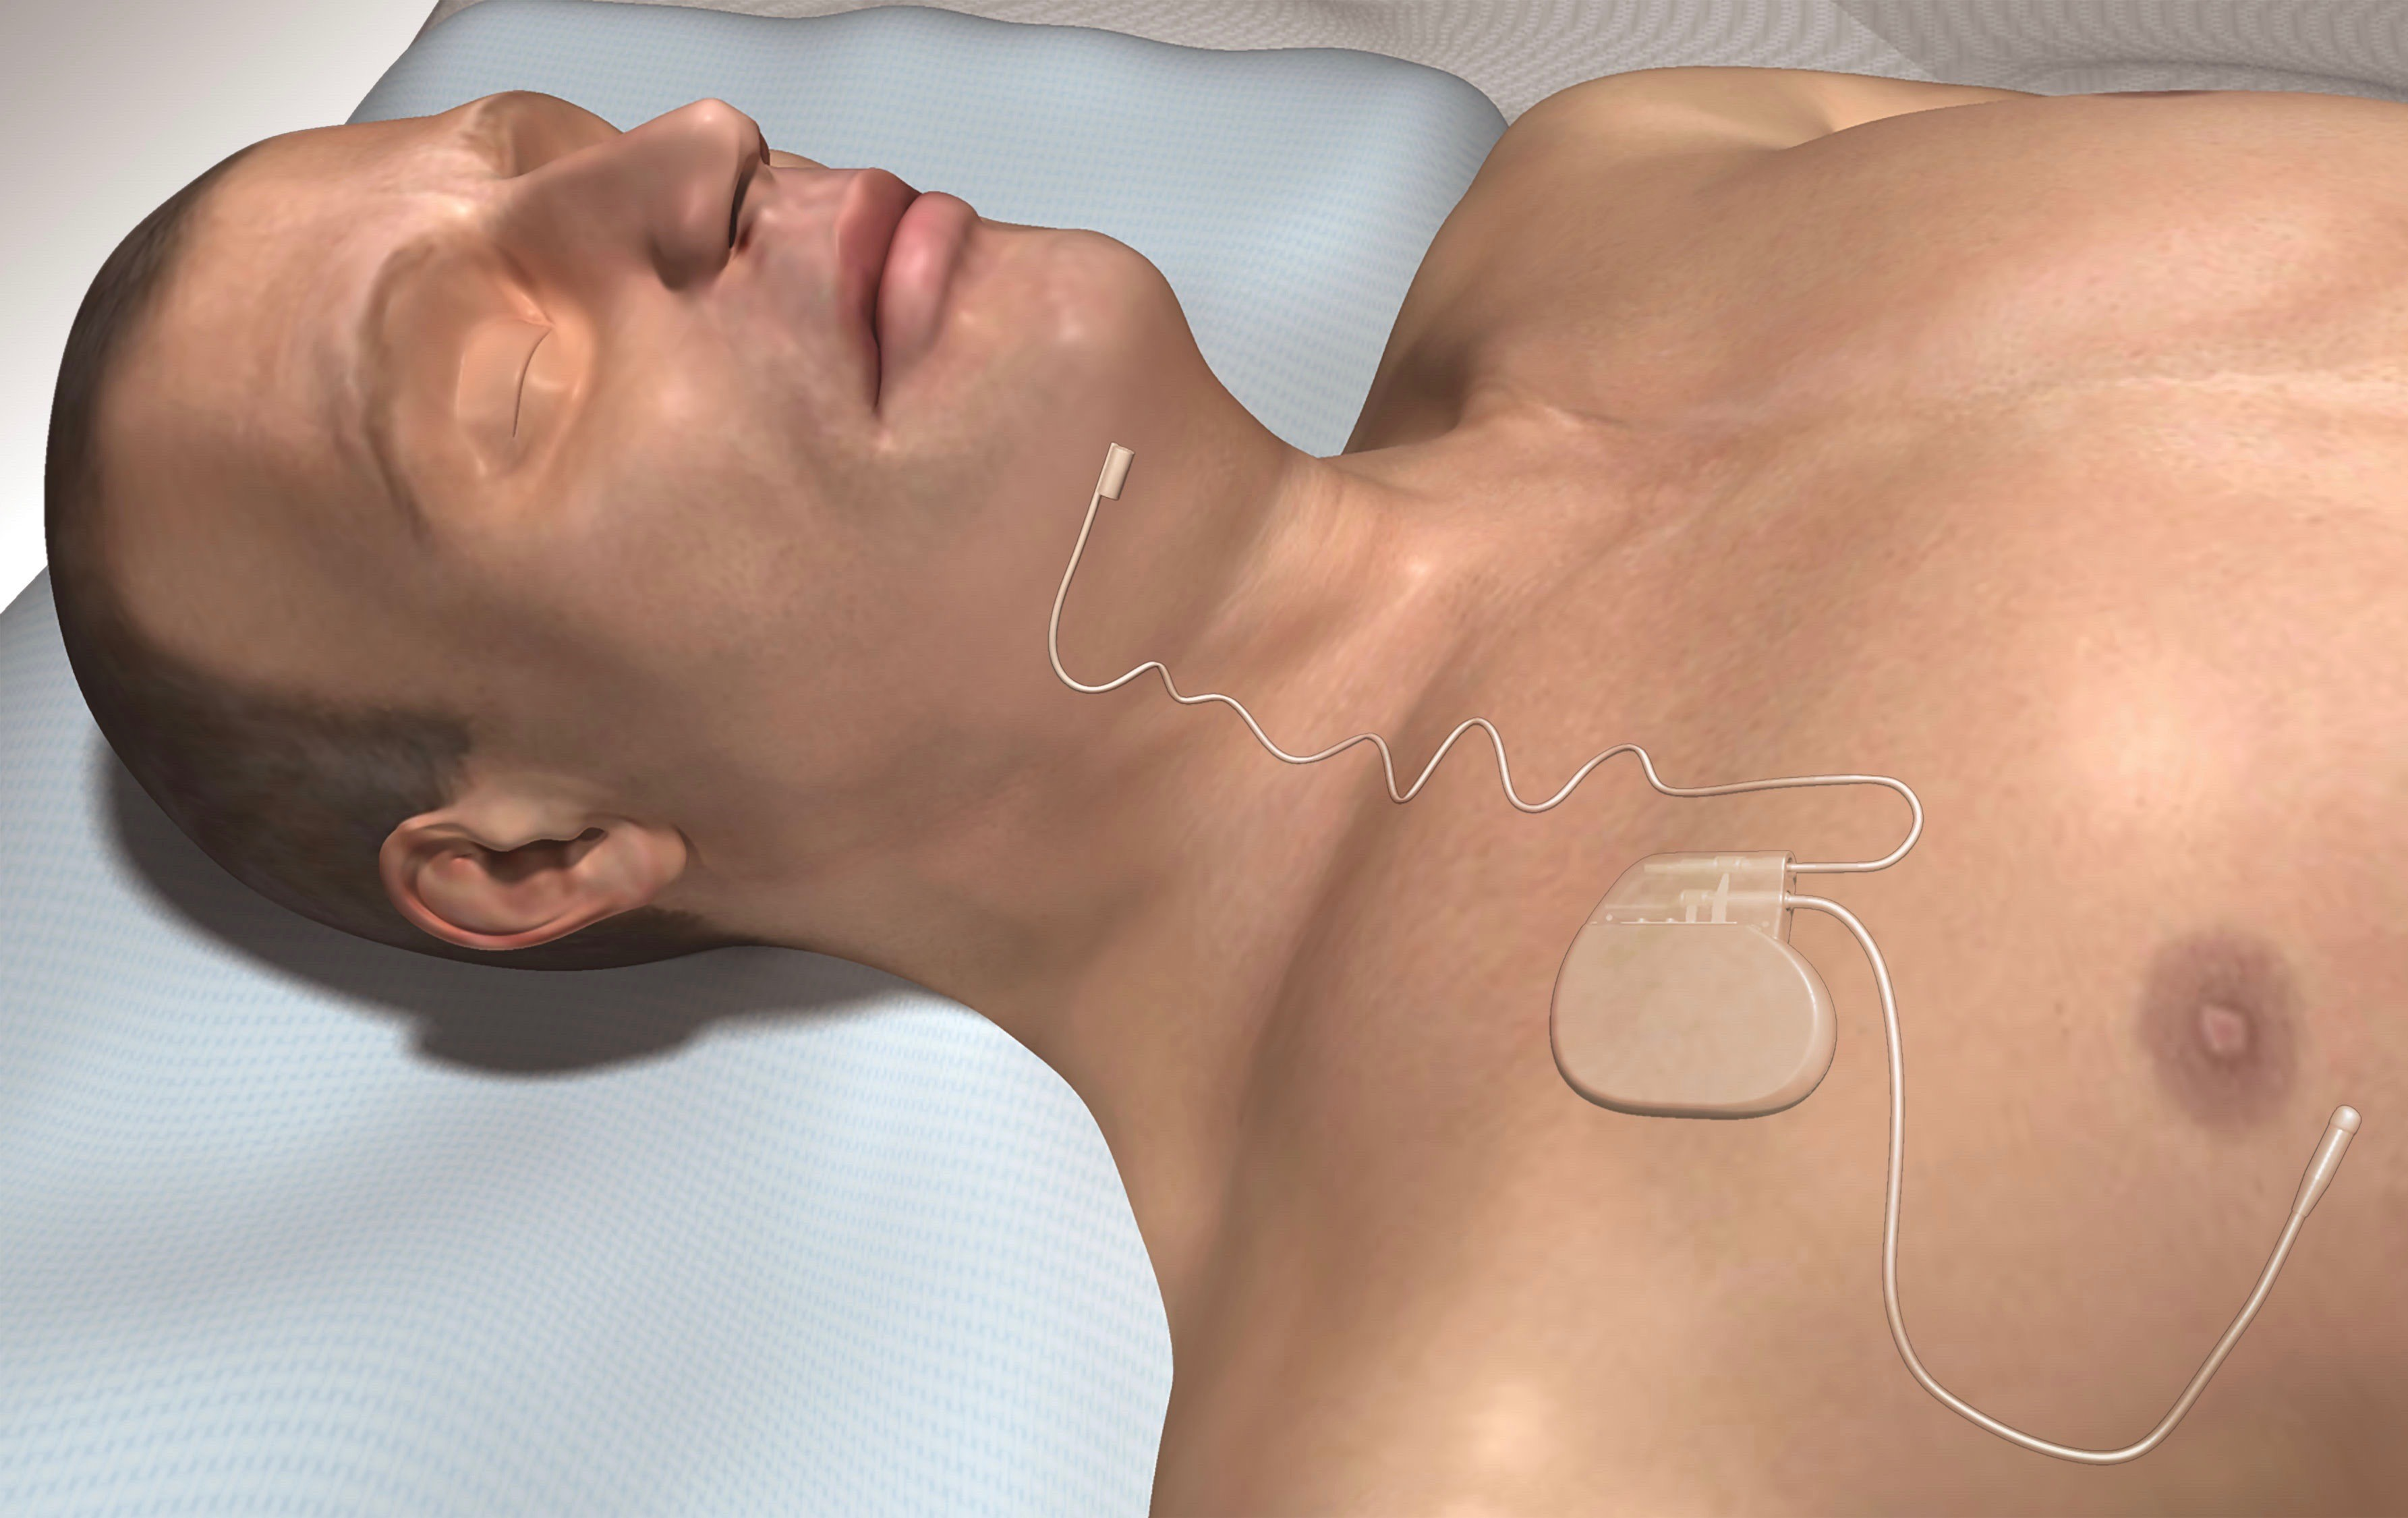 Illustration of a sleeping person with an Inspire implanted device to help improve sleep